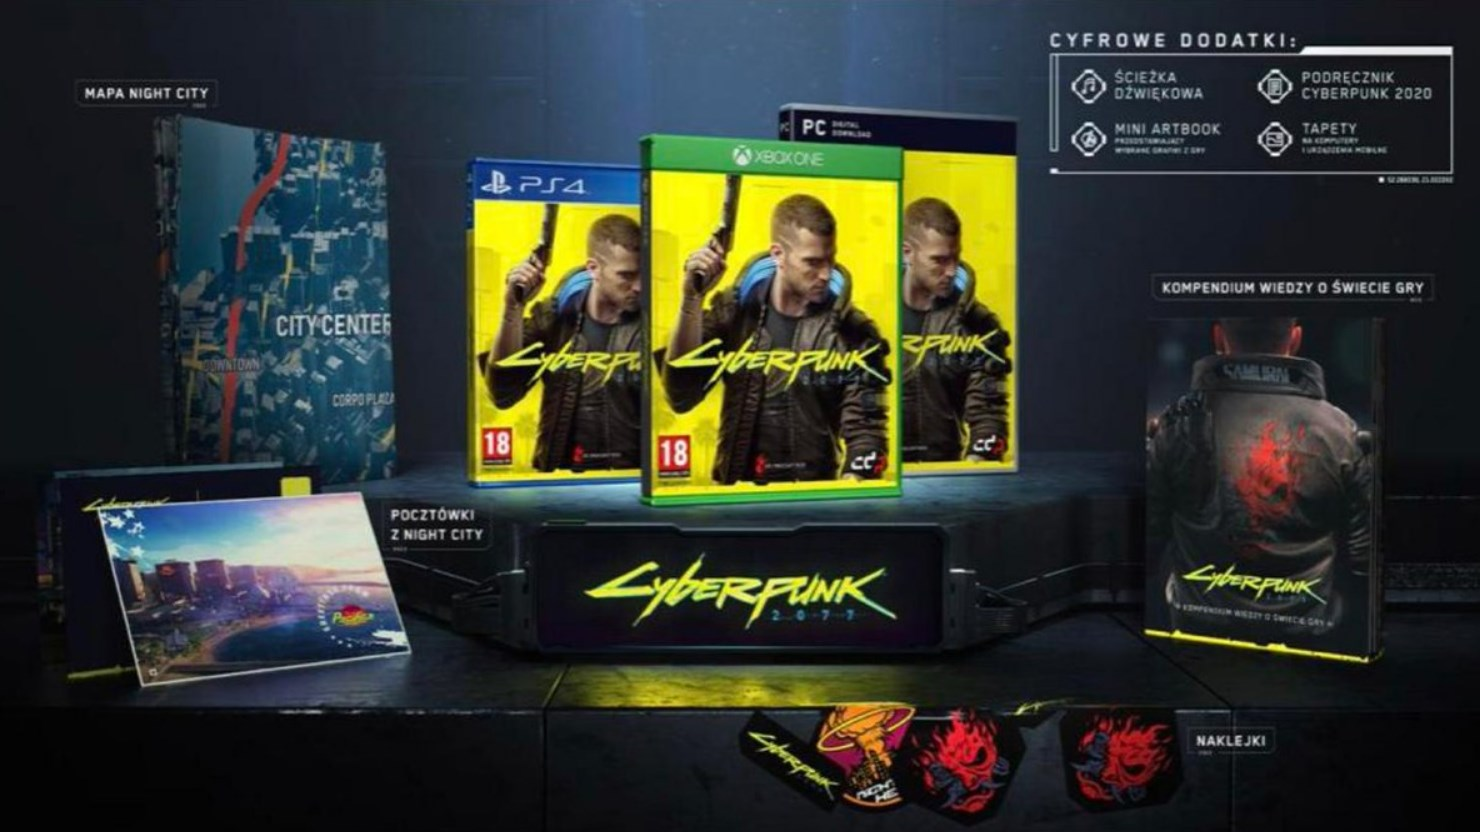 Promo Art of Cyberpunk 2077 Standard Edition Leaked - picture #2